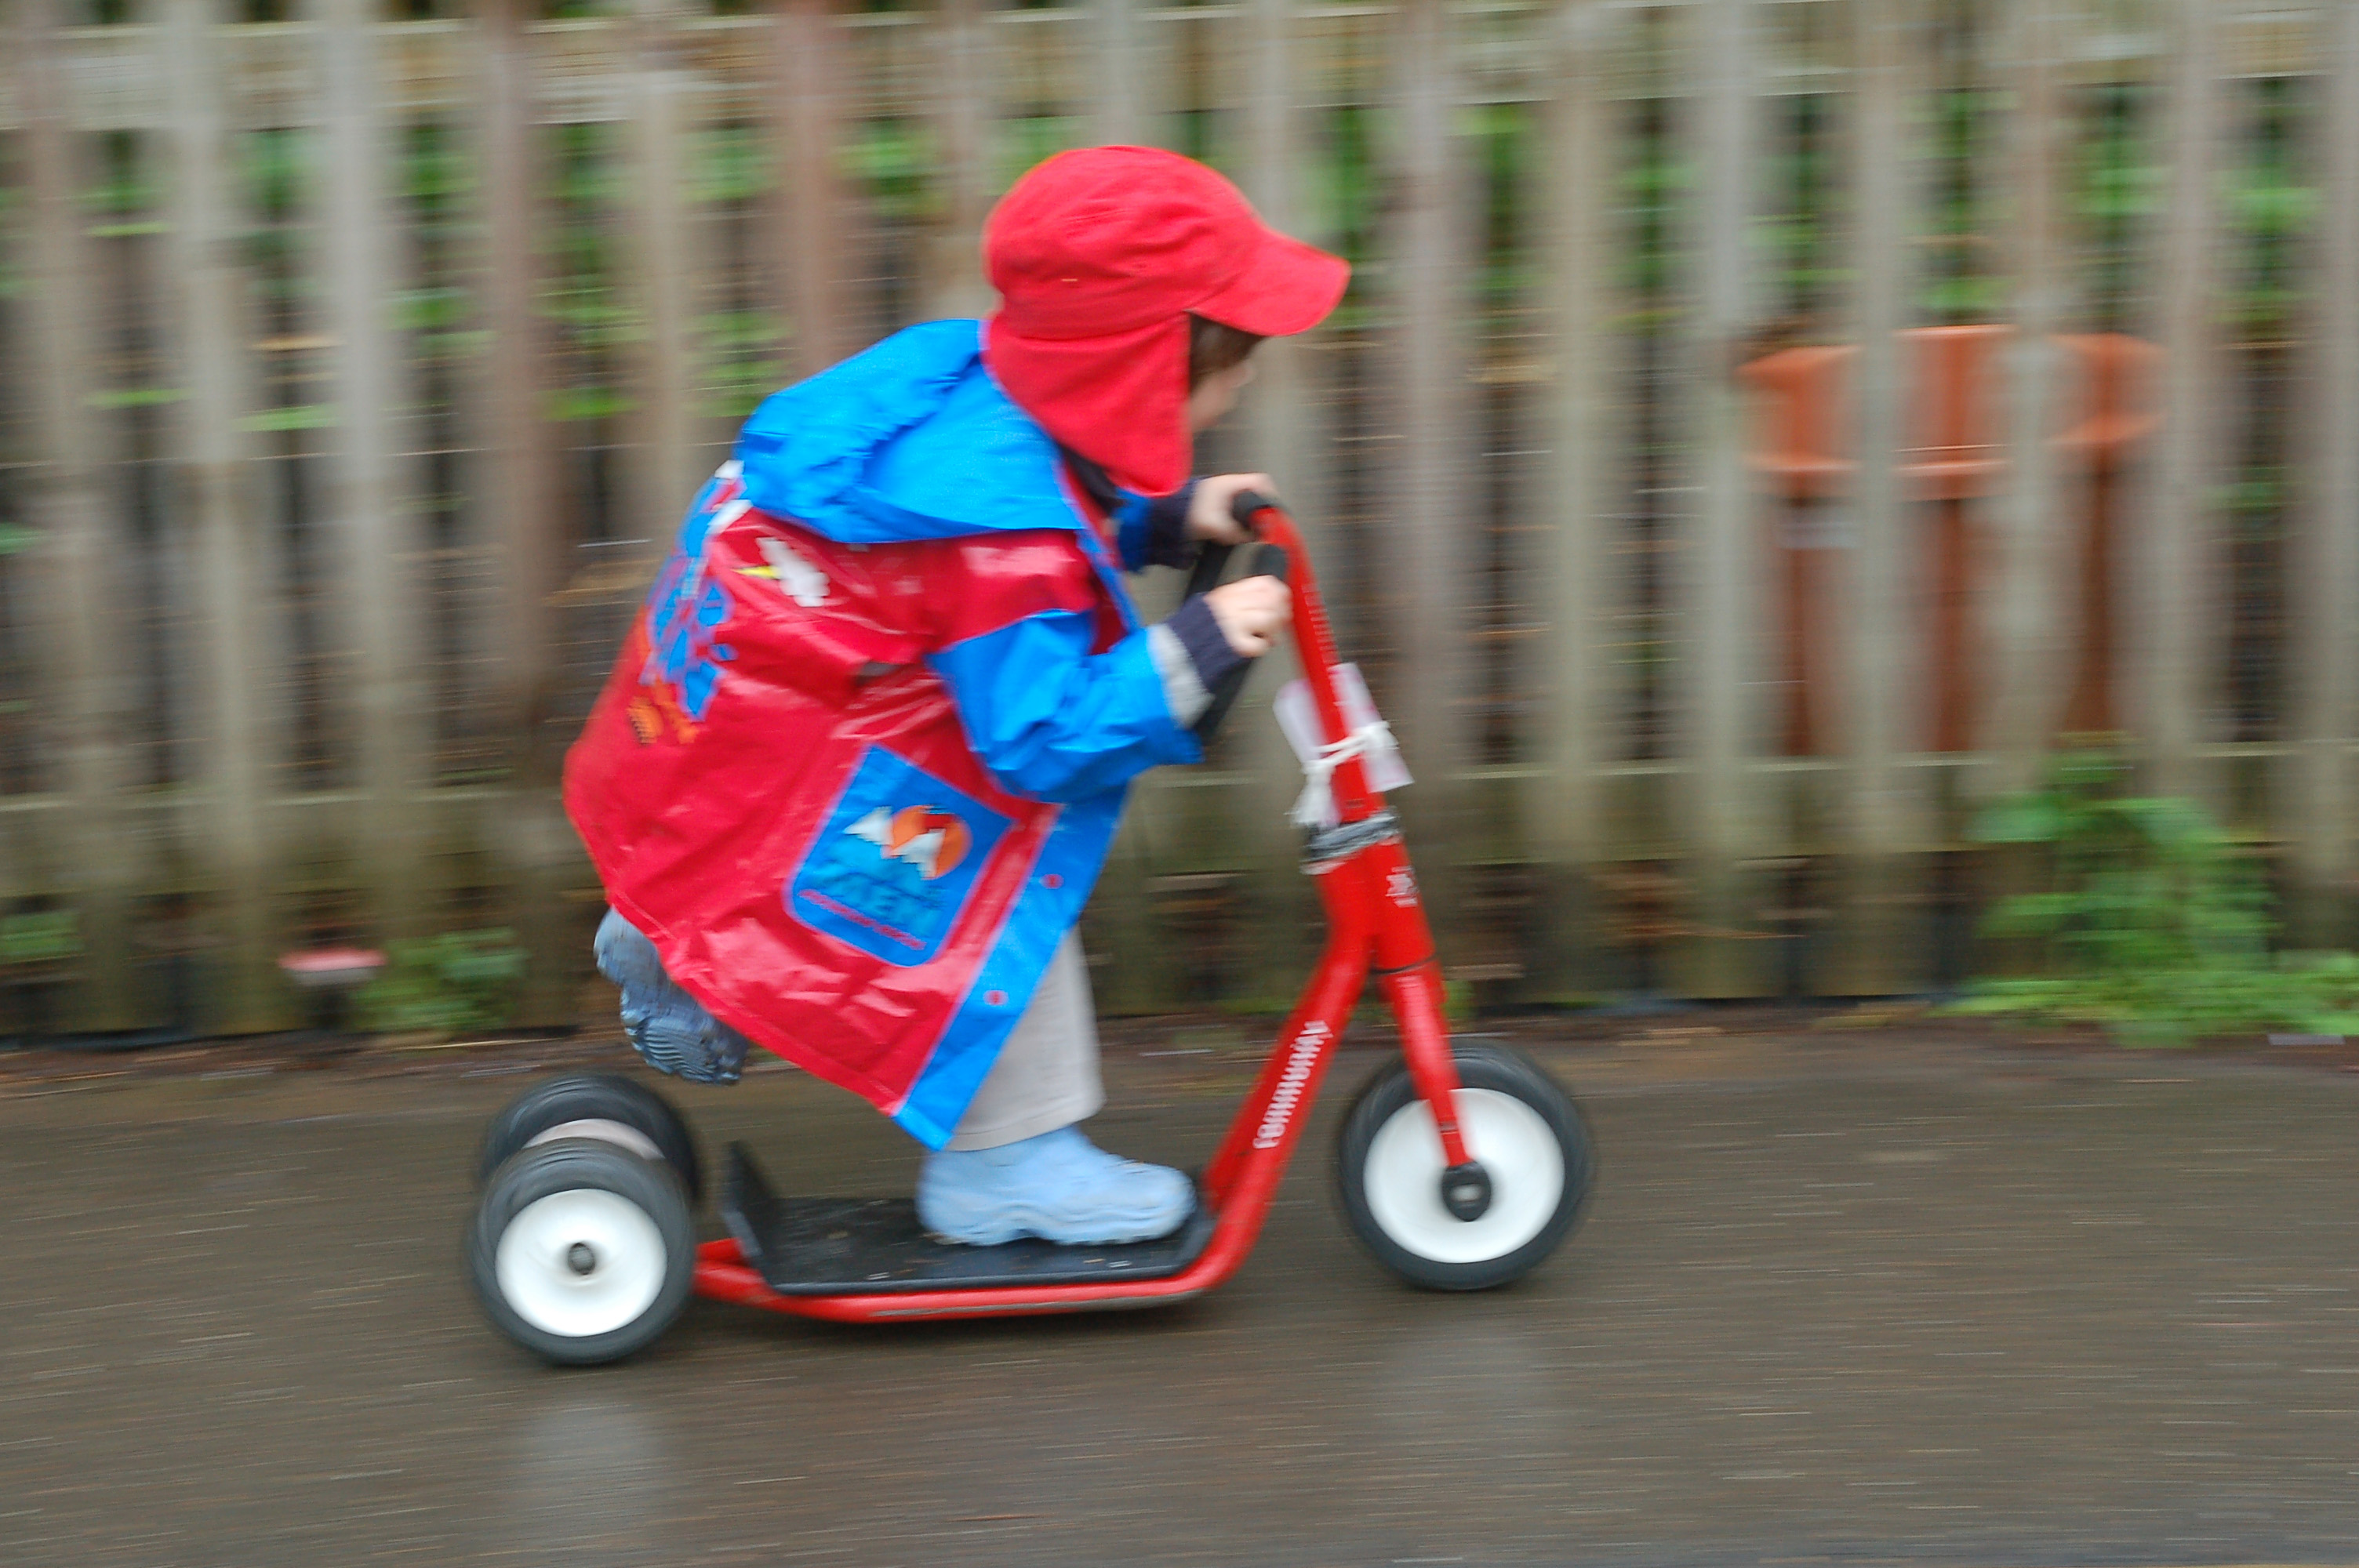 Scooting fast!